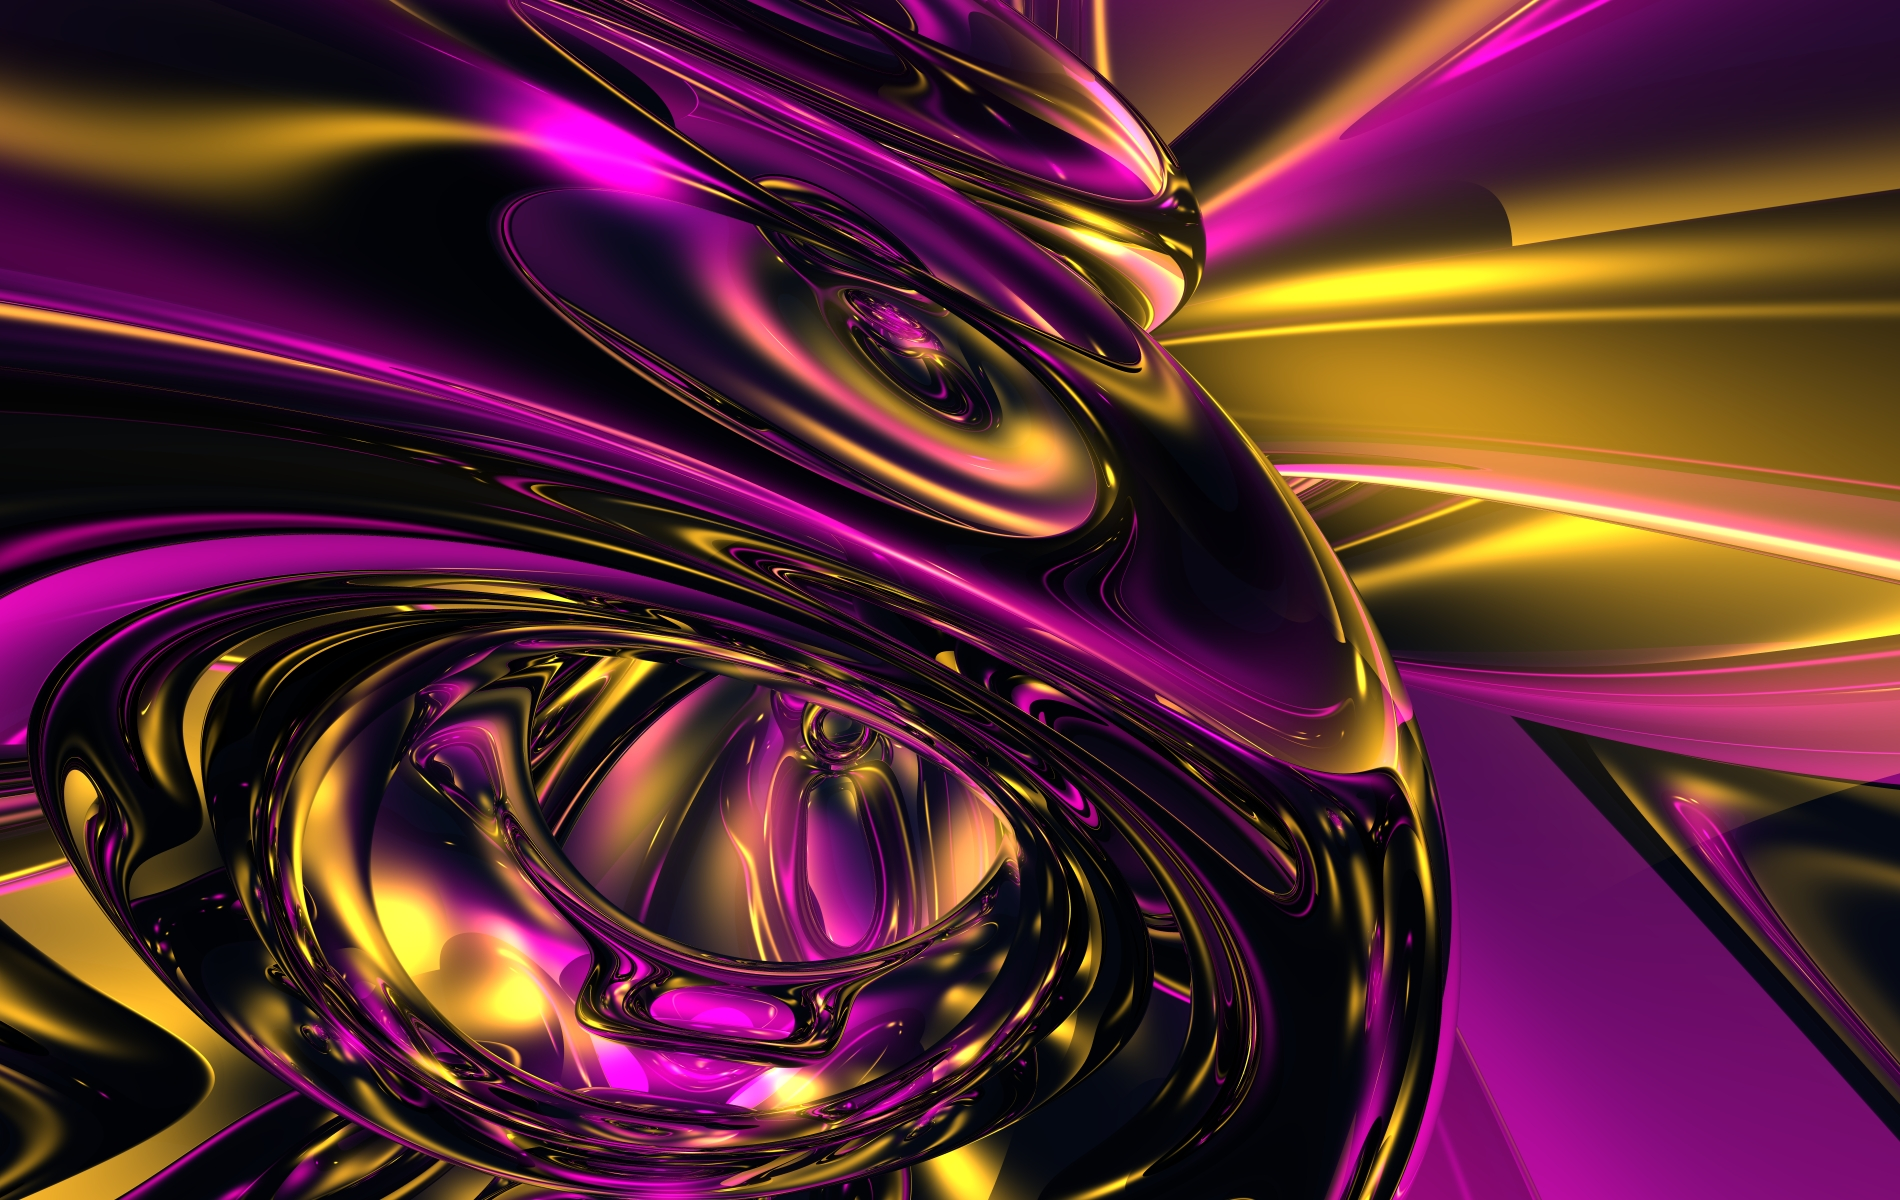 gold abstract wallpaper wch7i - photo #9